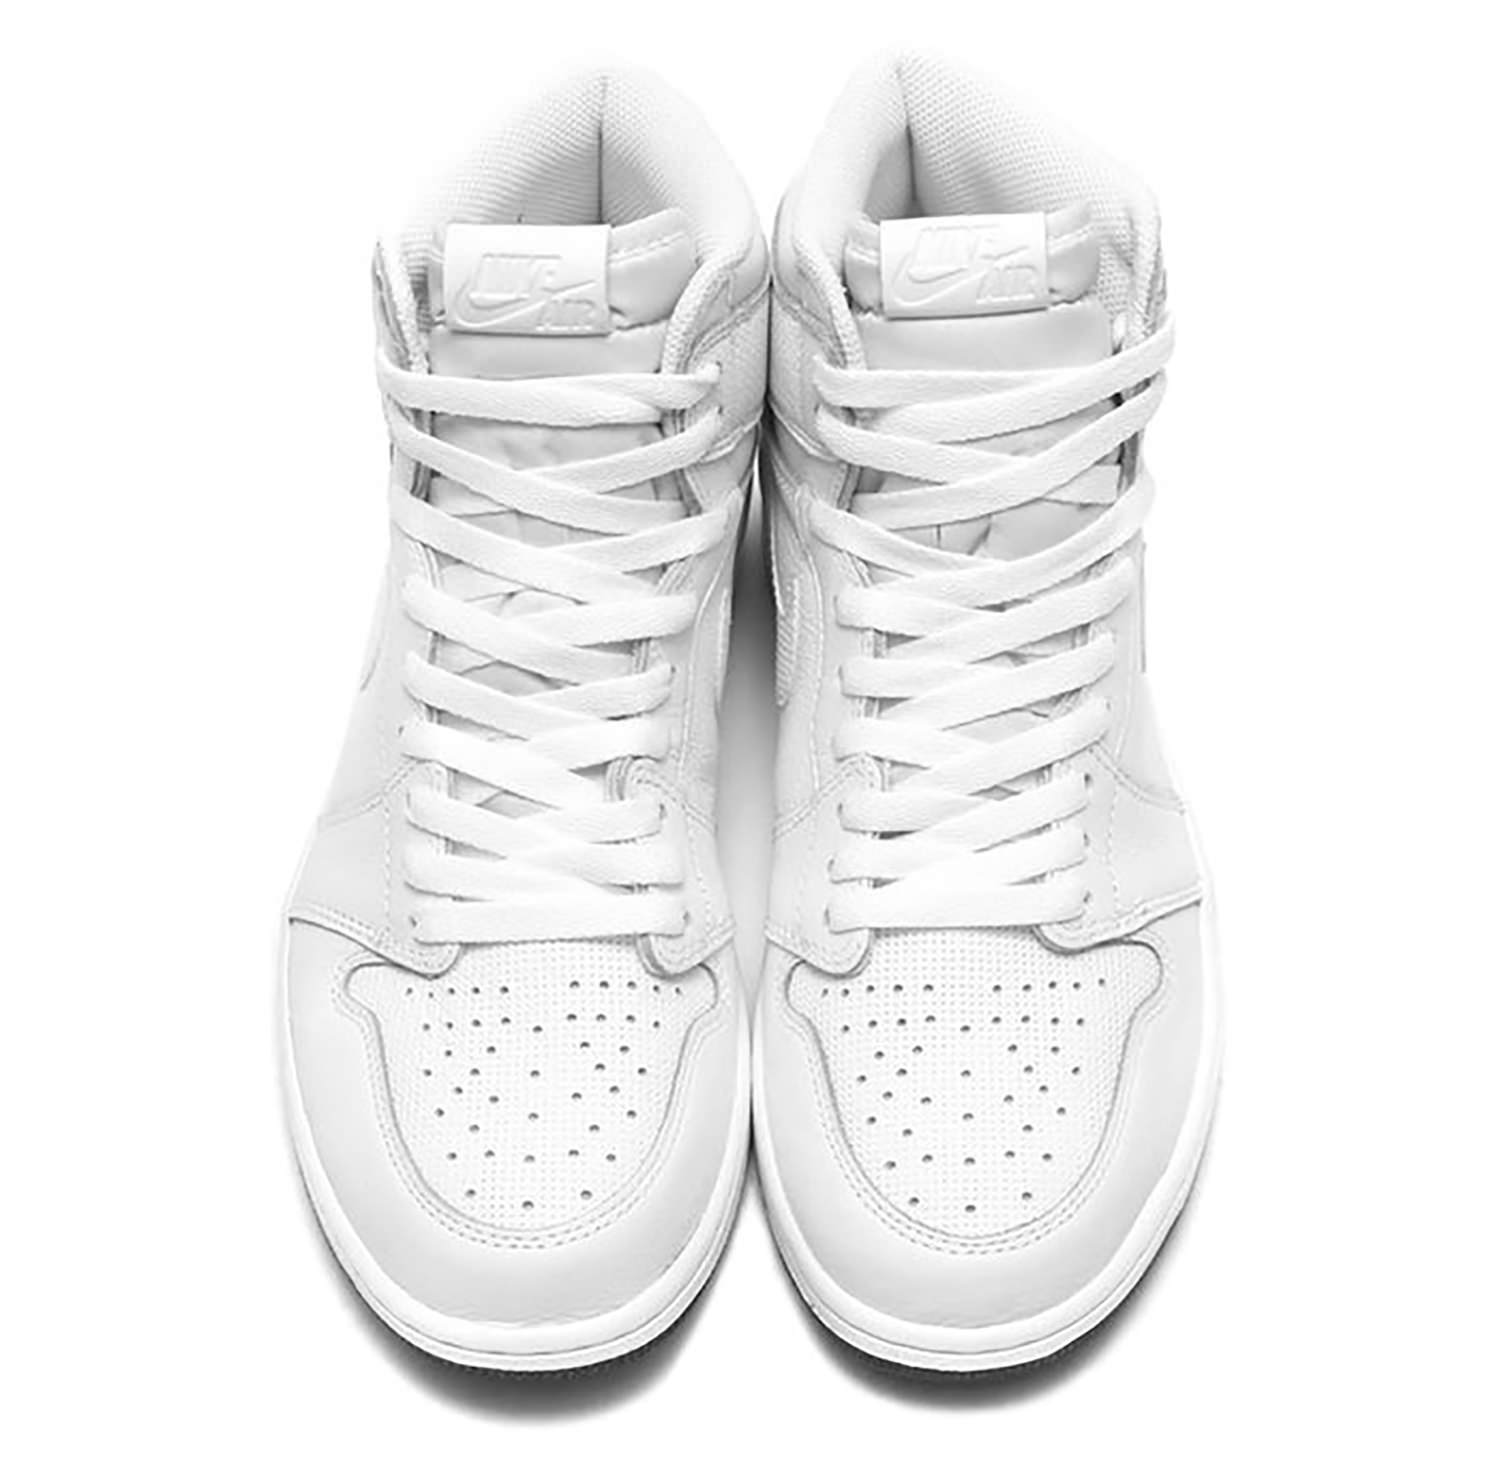 air-jordan-1-high-perforated-pack-4